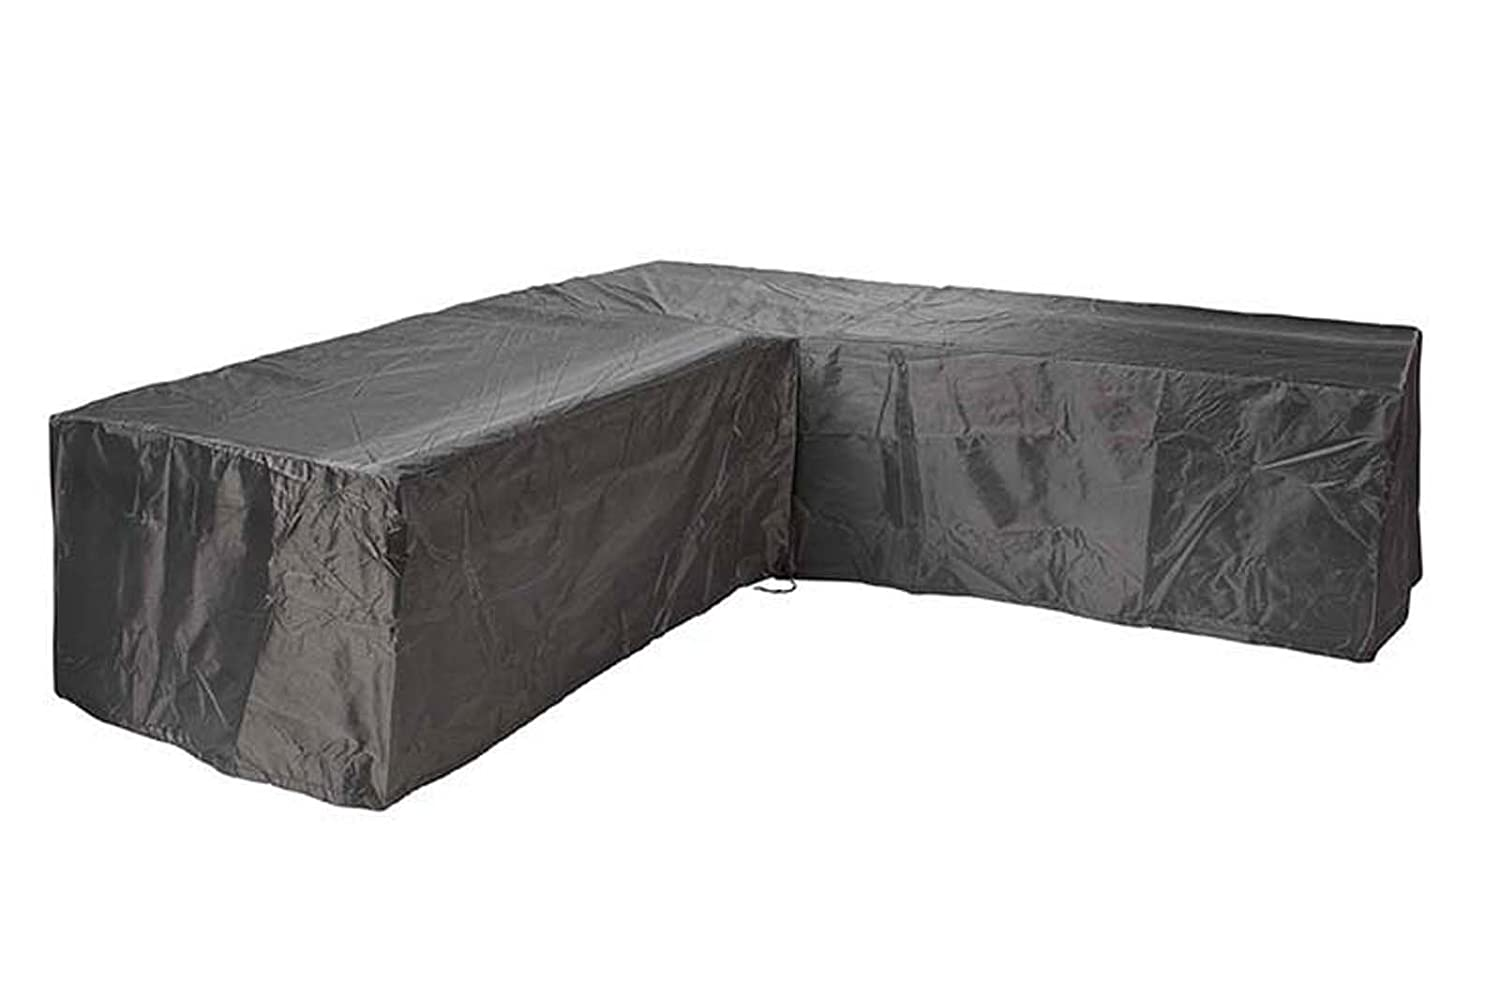 aerocover premium protective cover for l shape garden furniture set